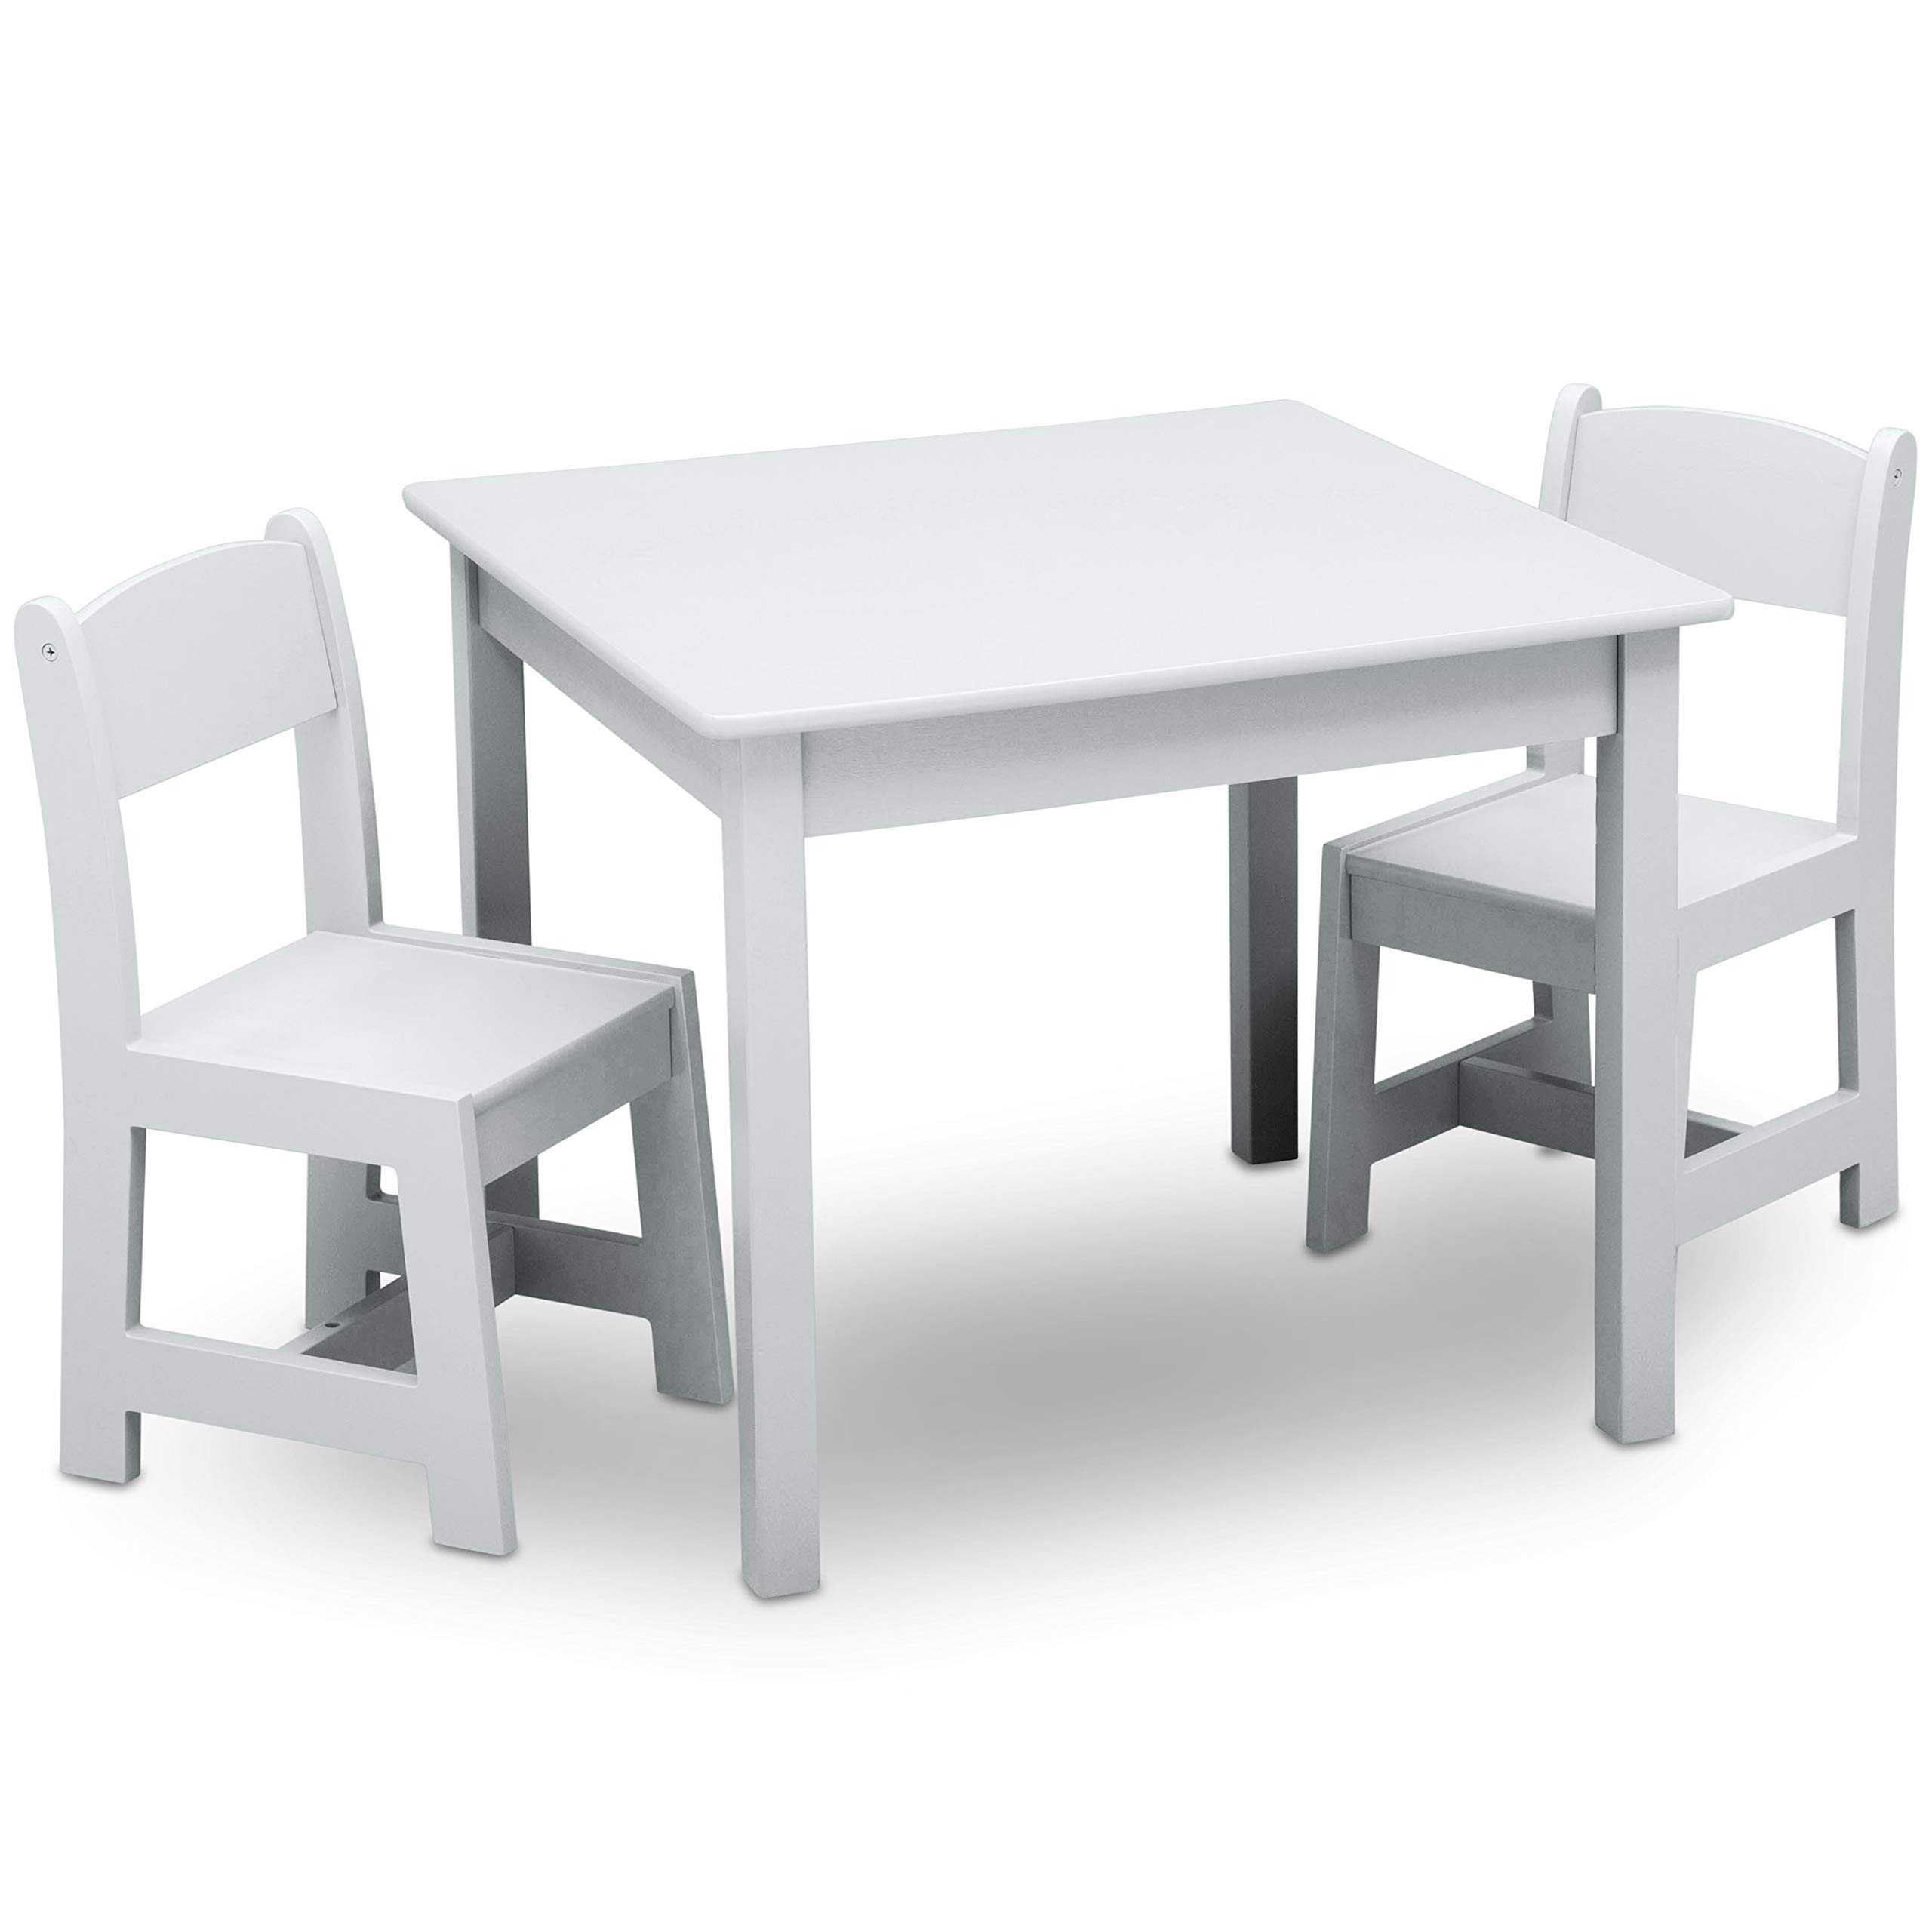 Delta Children MySize Kids Wood Table and Chair Set (2 Chairs Included), Bianca White